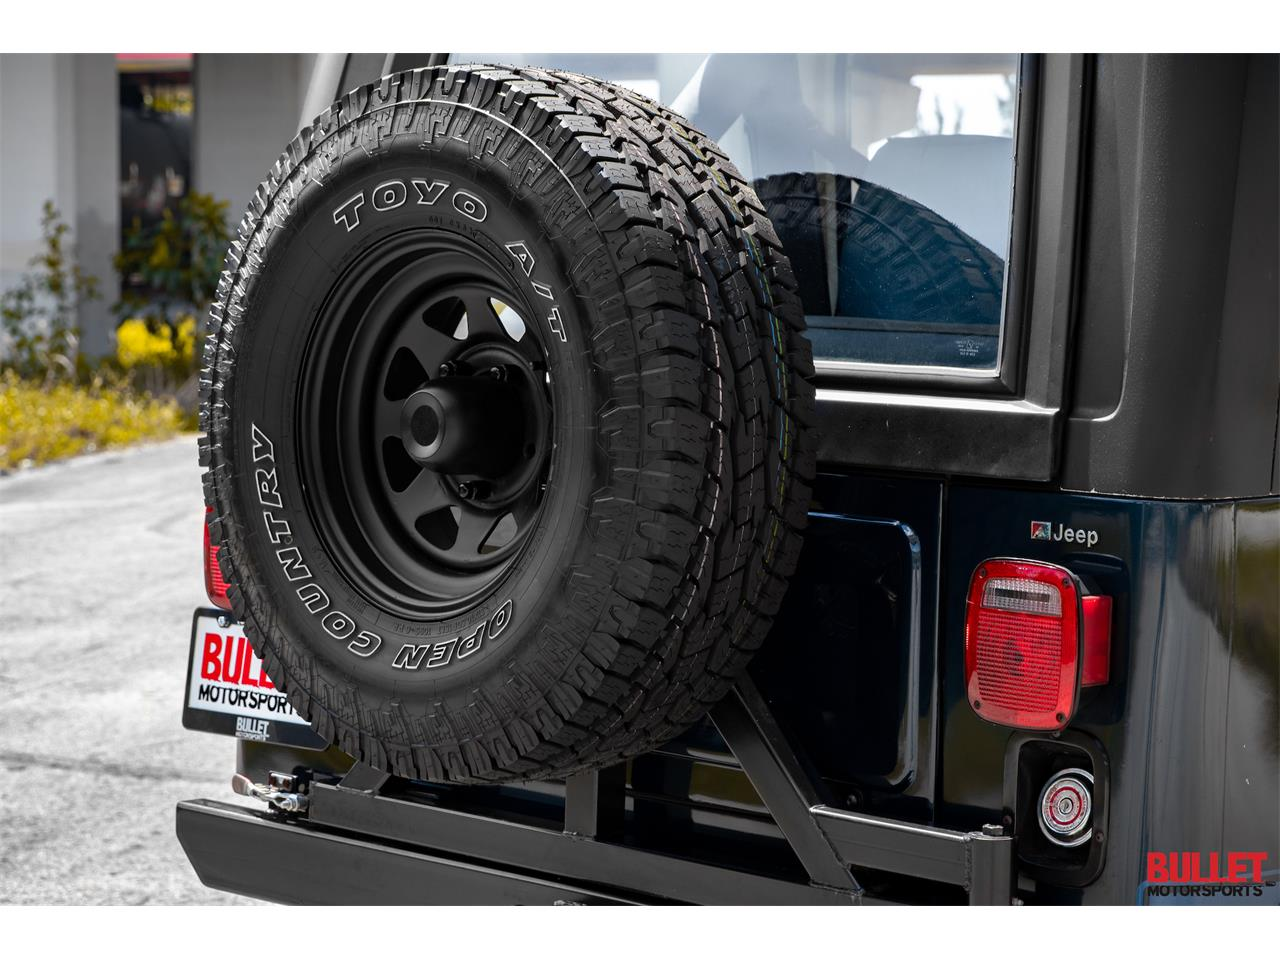 Large Picture of '83 Jeep CJ7 located in Fort Lauderdale Florida Offered by Bullet Motorsports Inc - PSWH